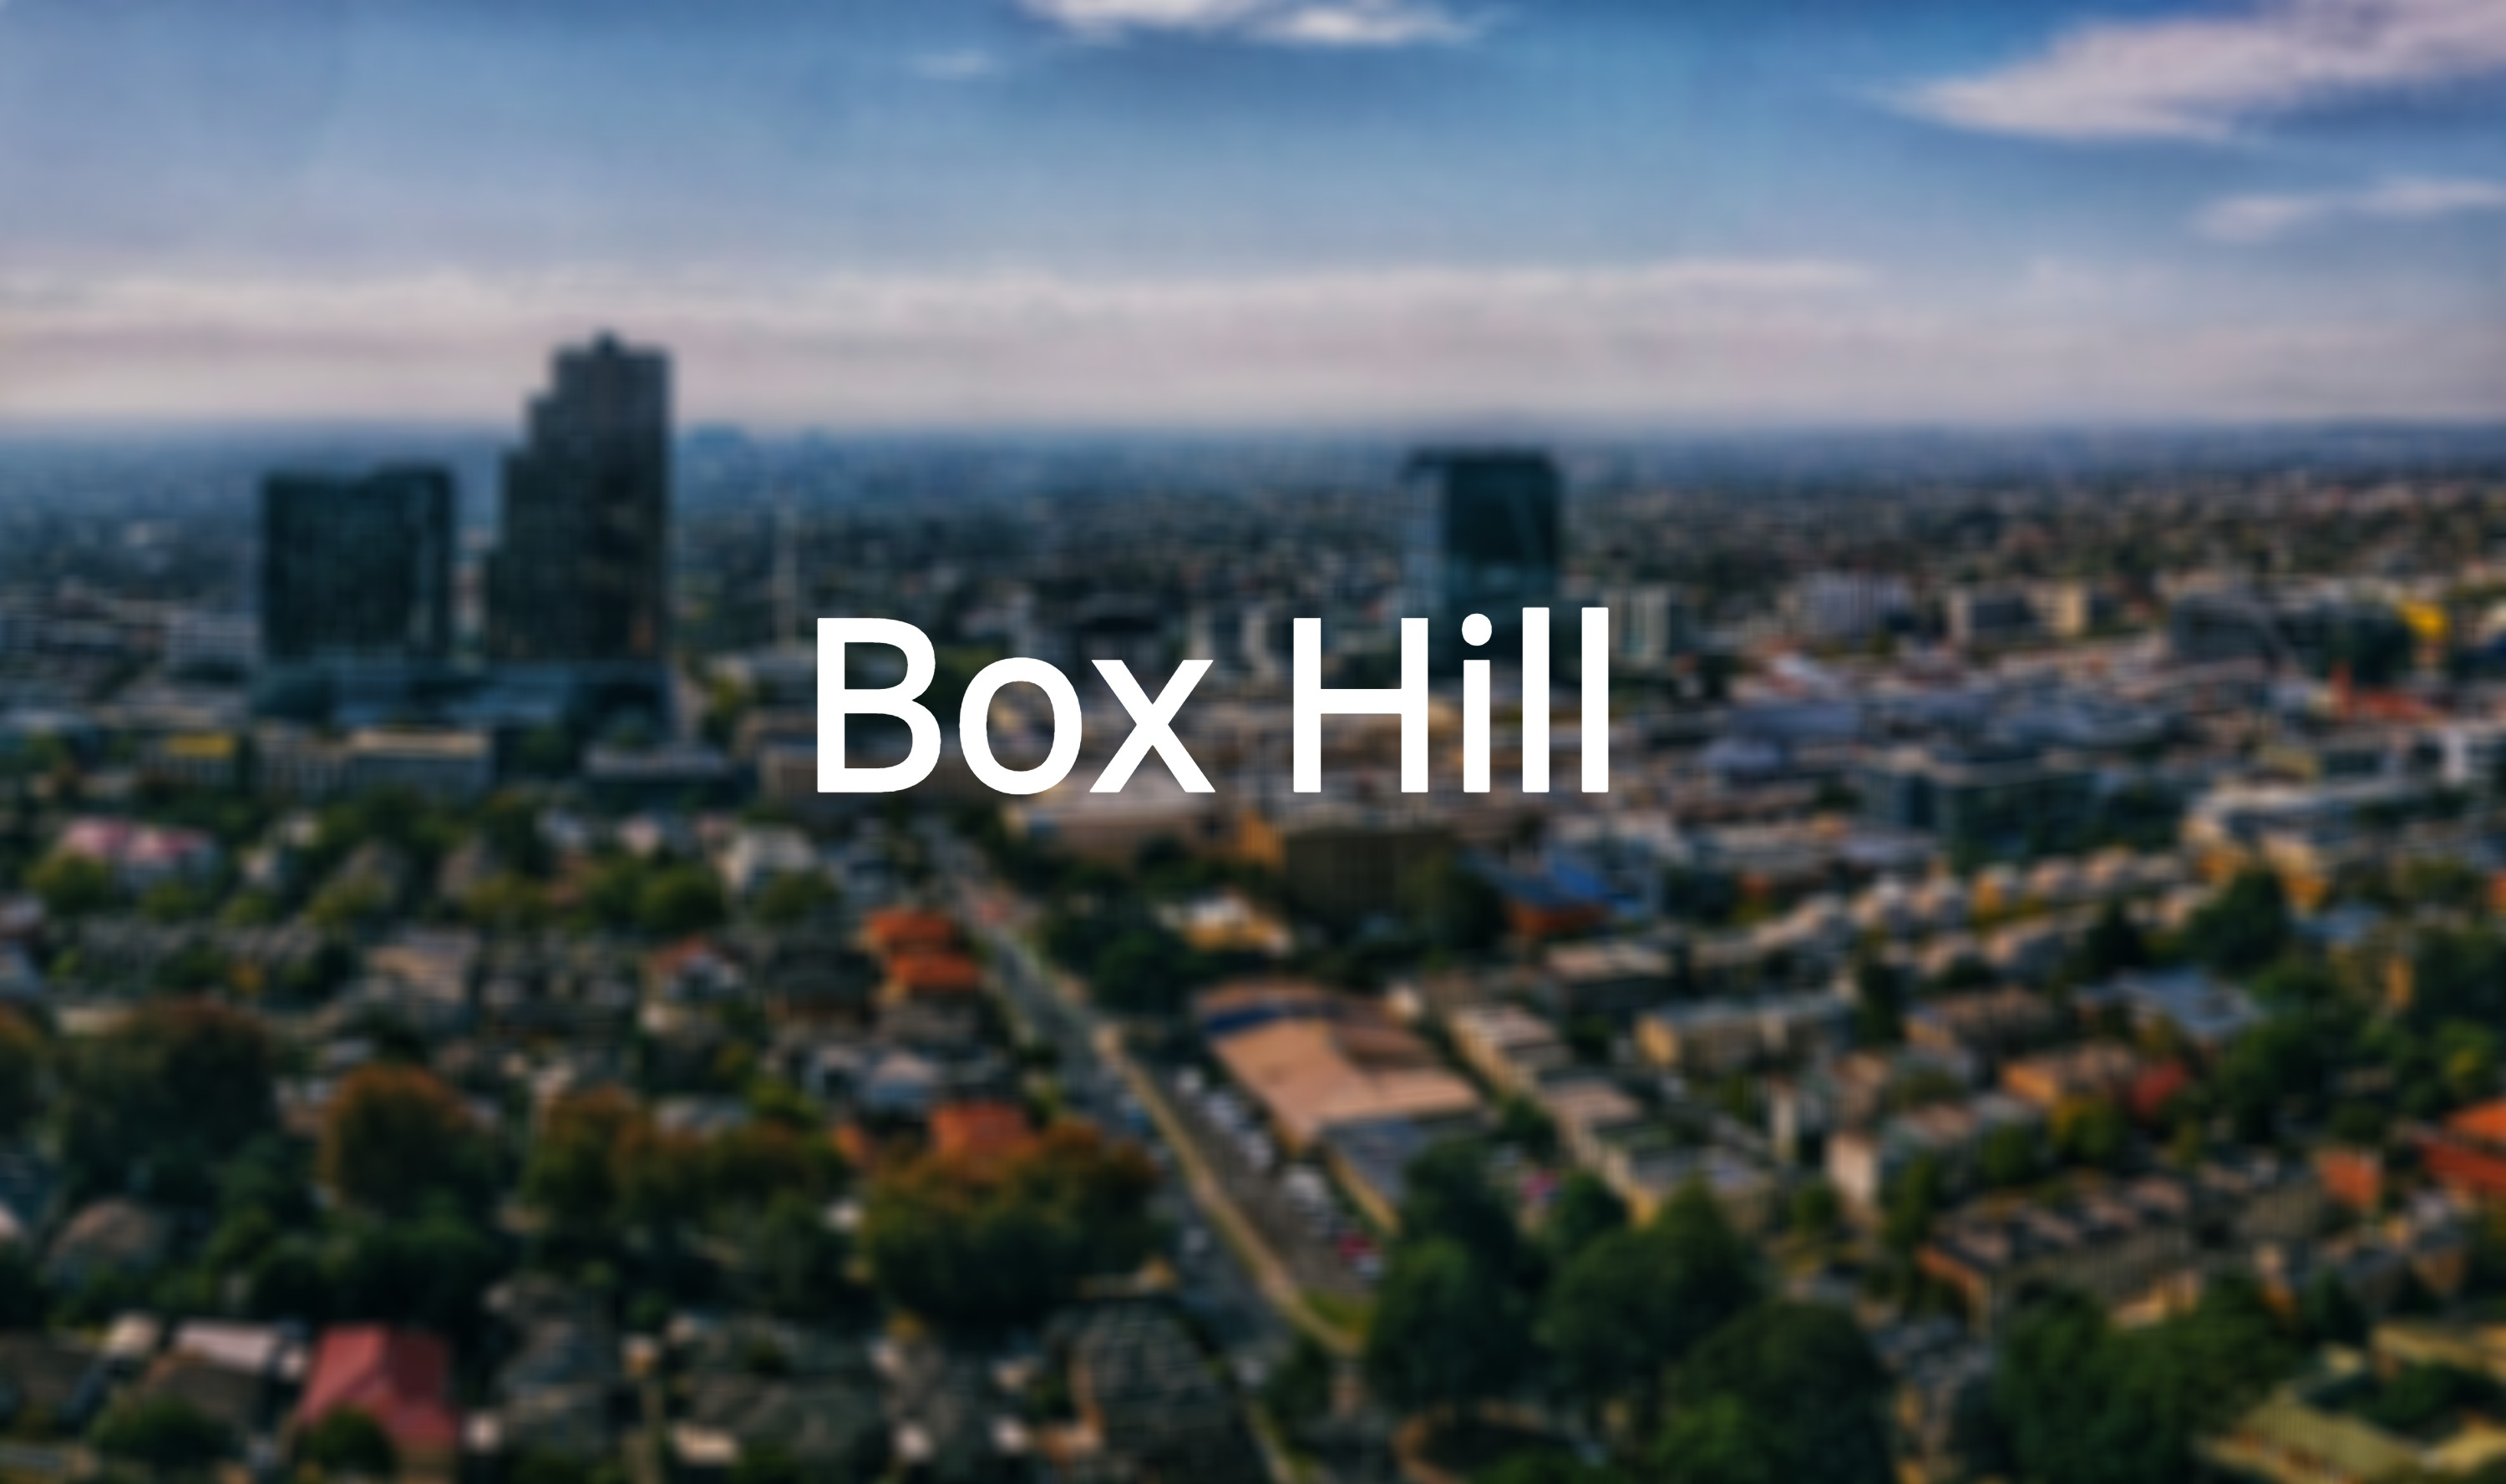 Aerial_panorama_of_Box_Hill,_taken_from_